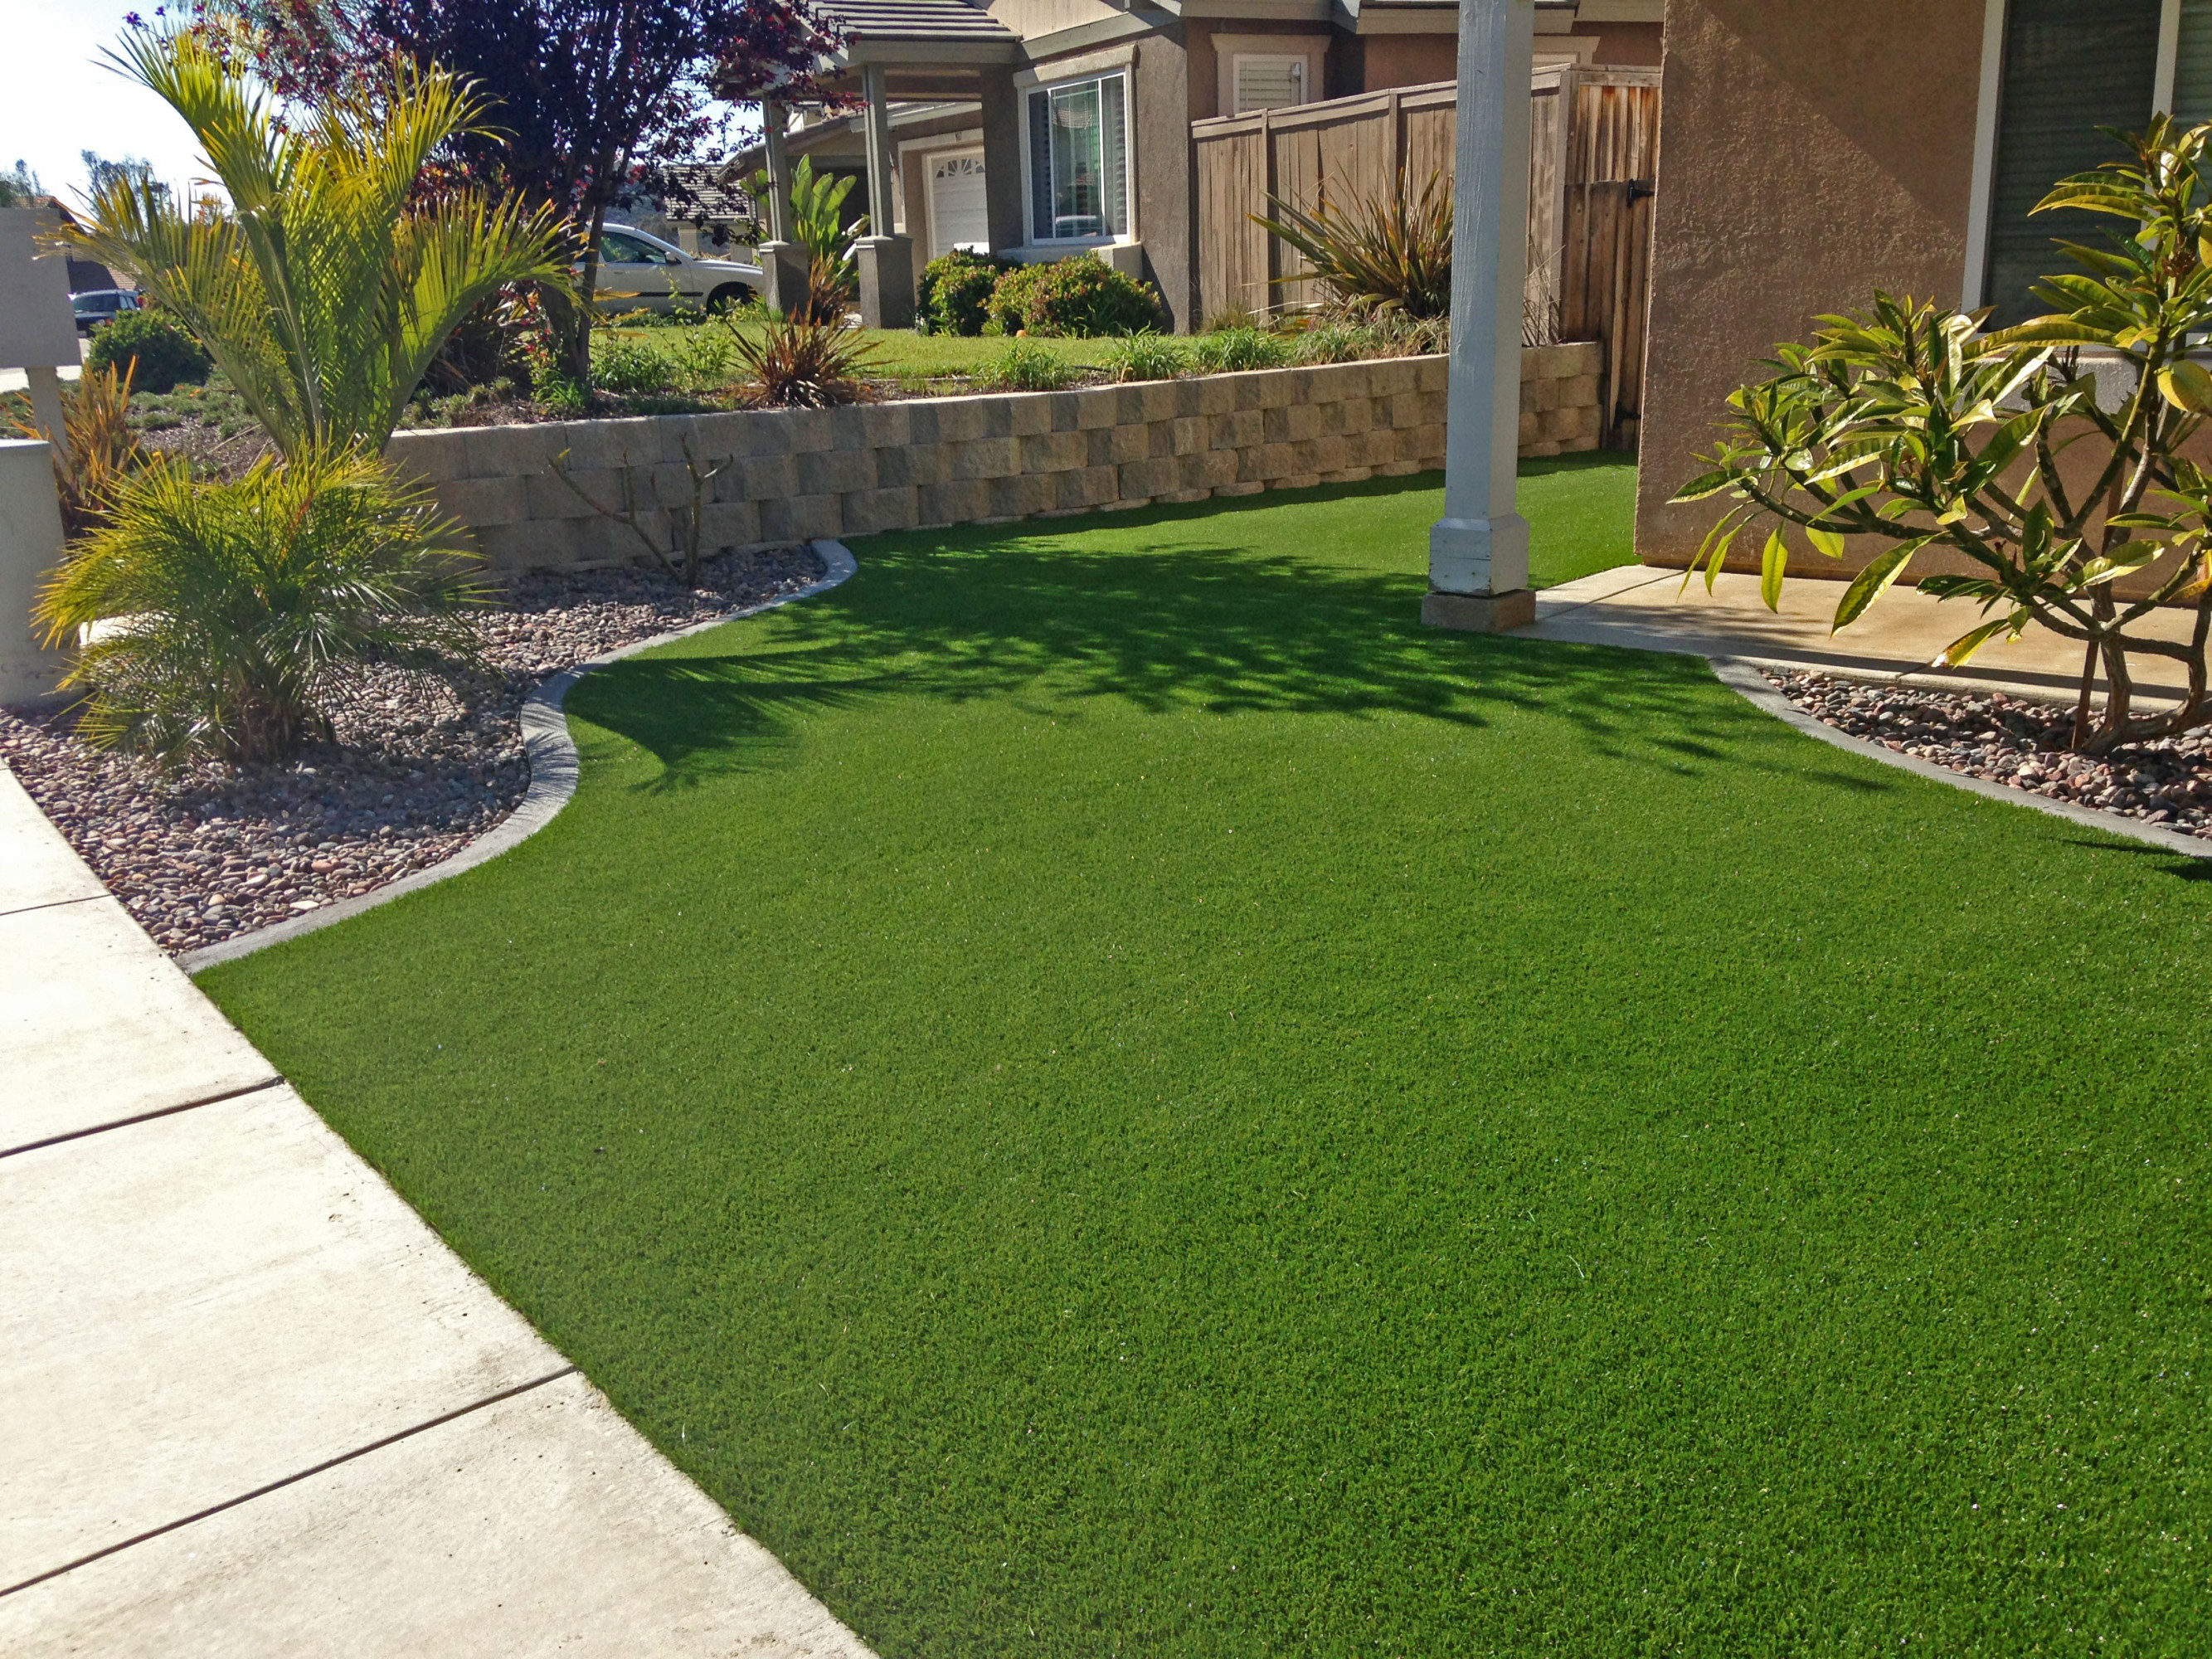 omegaturf synthetic turf u2013 san diego county u0027s favorite synthetic